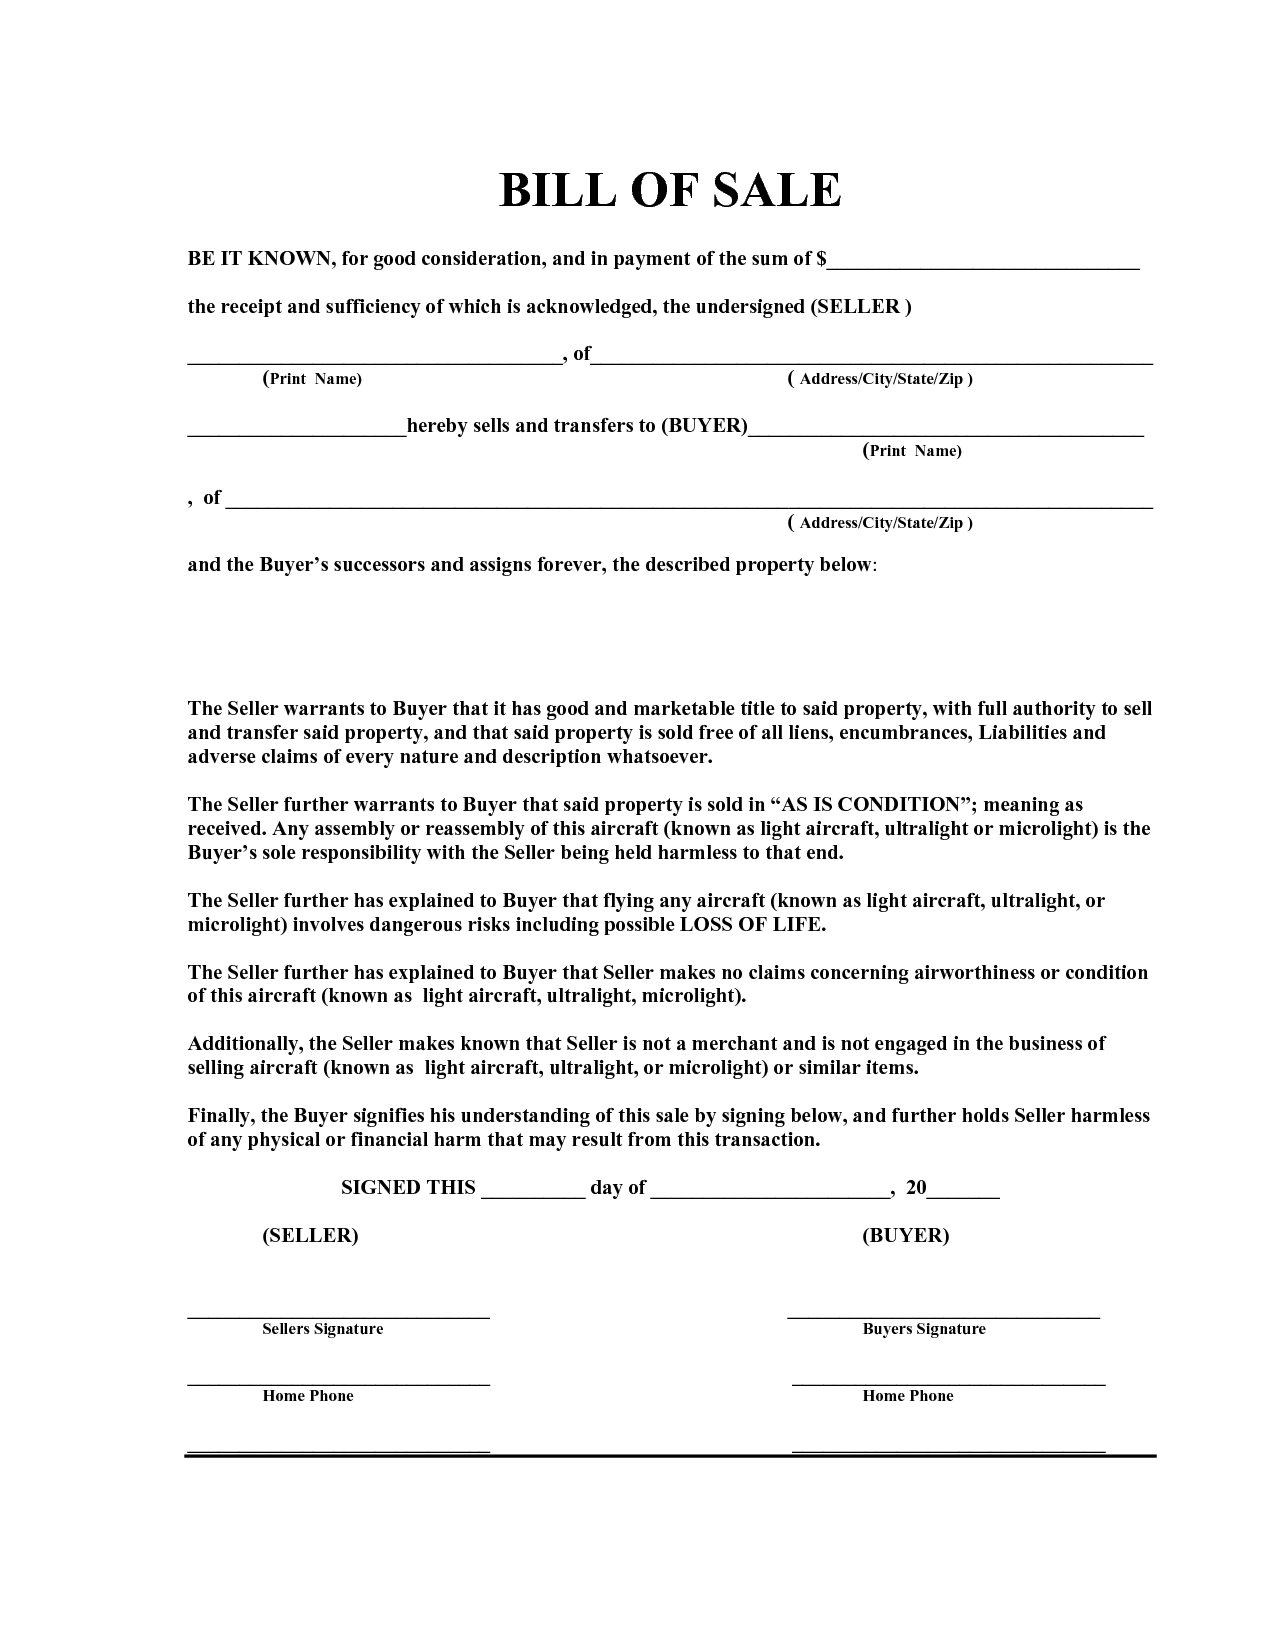 Free Bill of Sale Template - PDF by Marymenti - as-is bill of sale ...